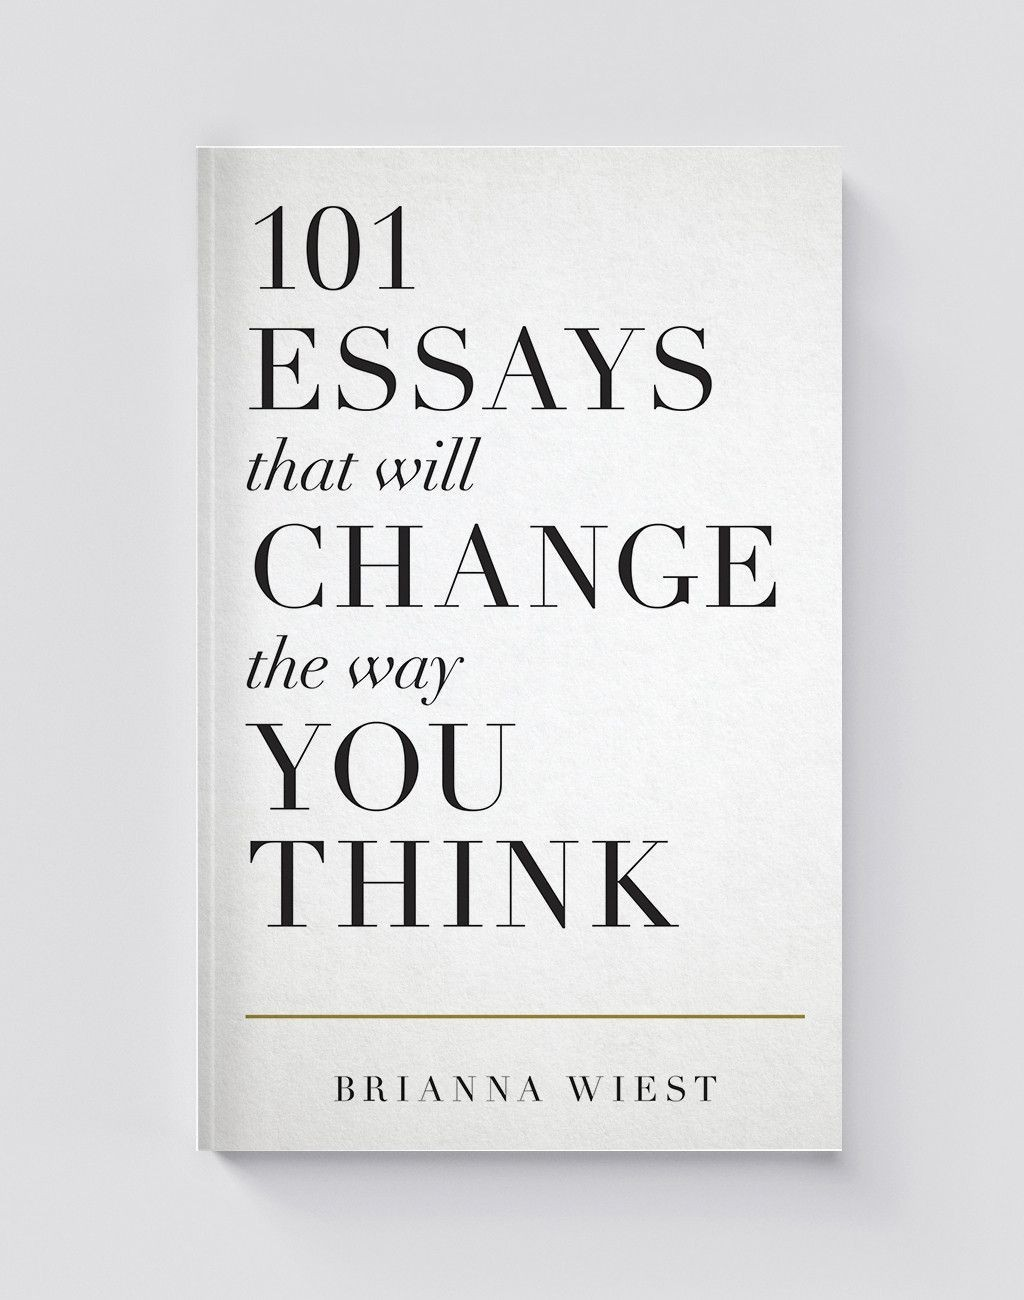 013 Essay Example Essays That Will Change The Way You Think Unusual 101 Book Depository Barnes And Noble Review Large